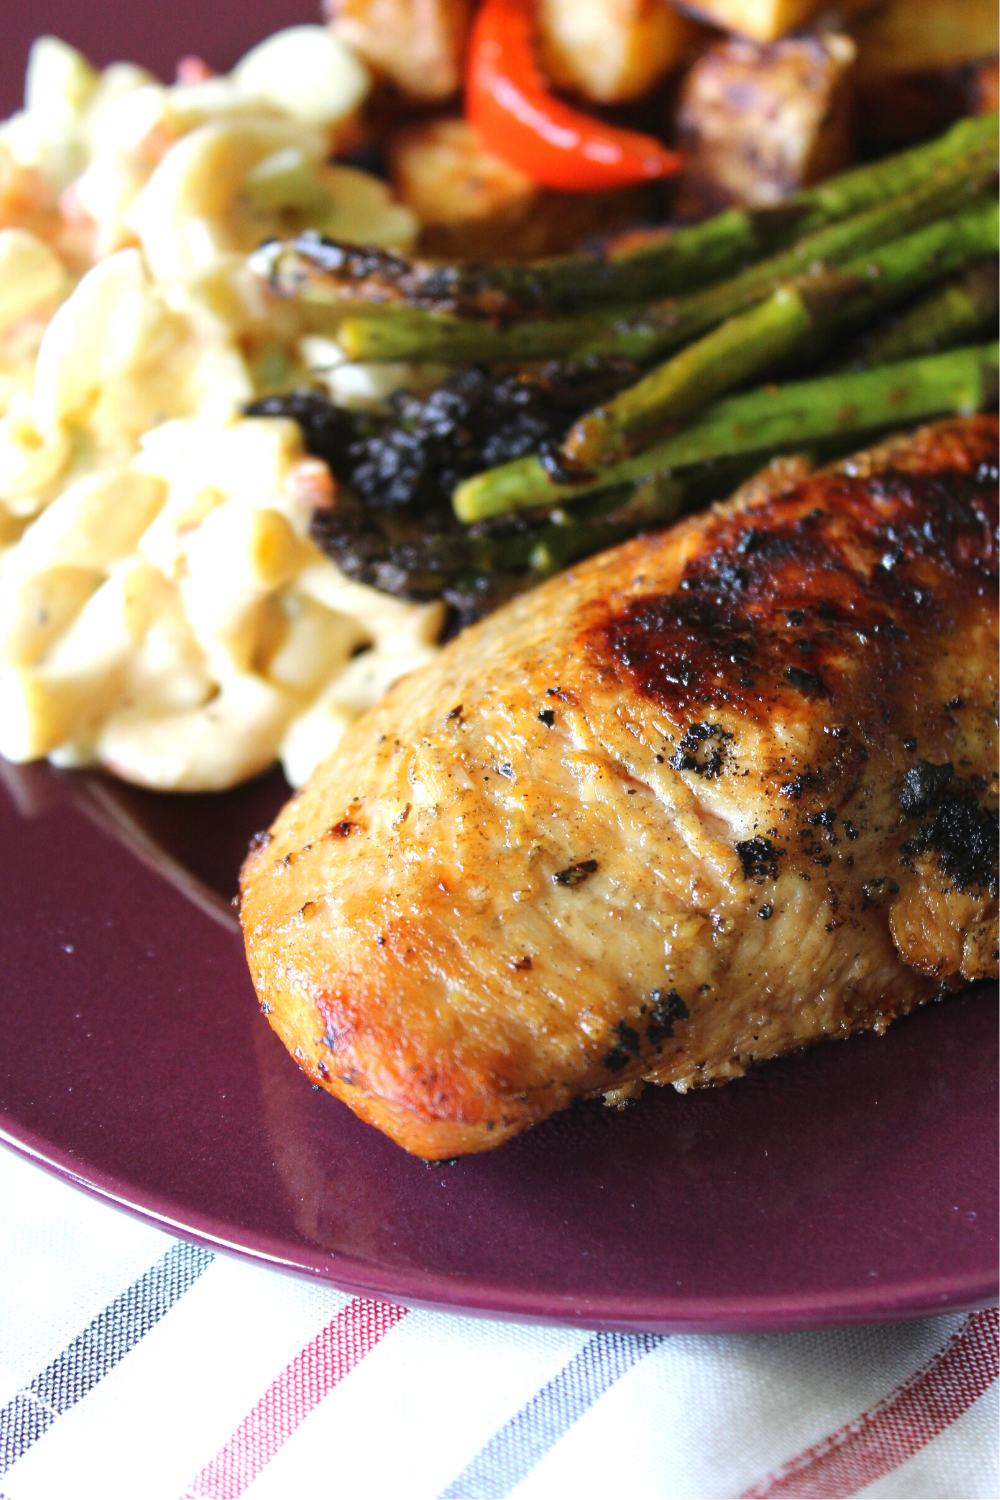 Mesquite Grilled Chicken Marinade Simple Easy Marinade Smokey Chicken Breasts Chicken Thighs My Farmhouse Table